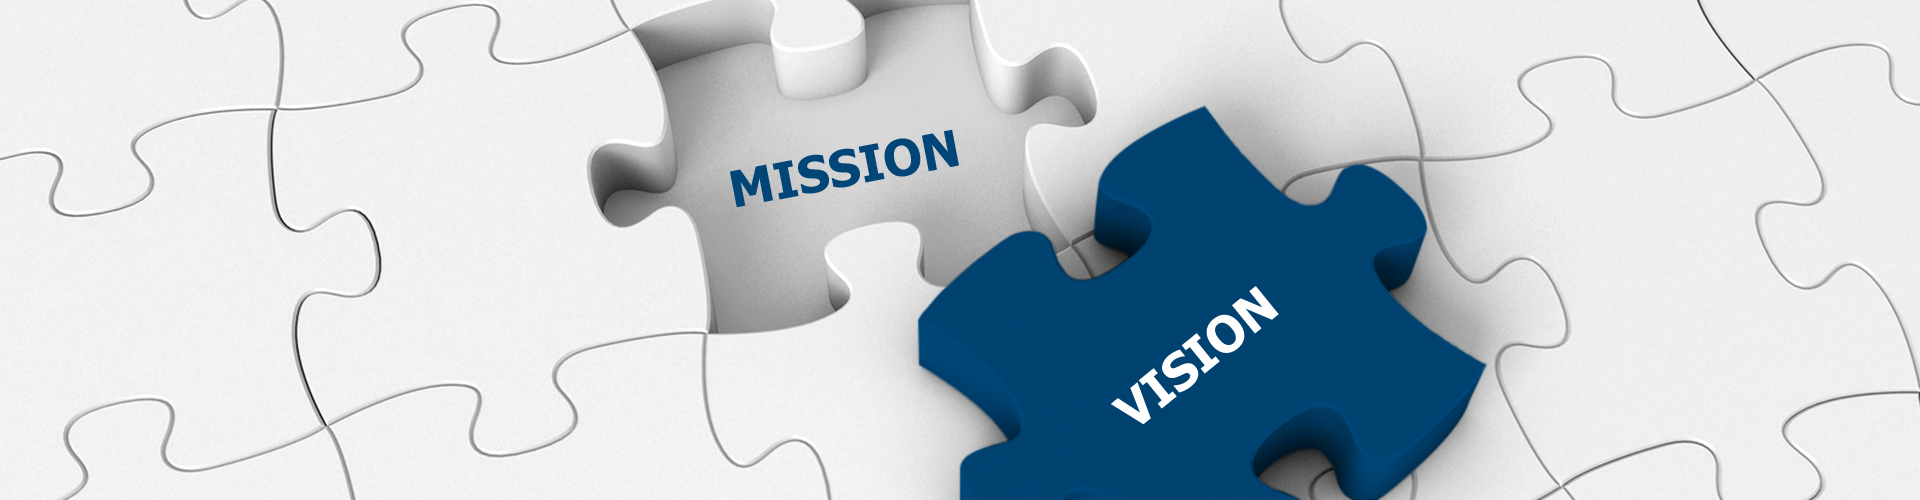 Mission and Vision